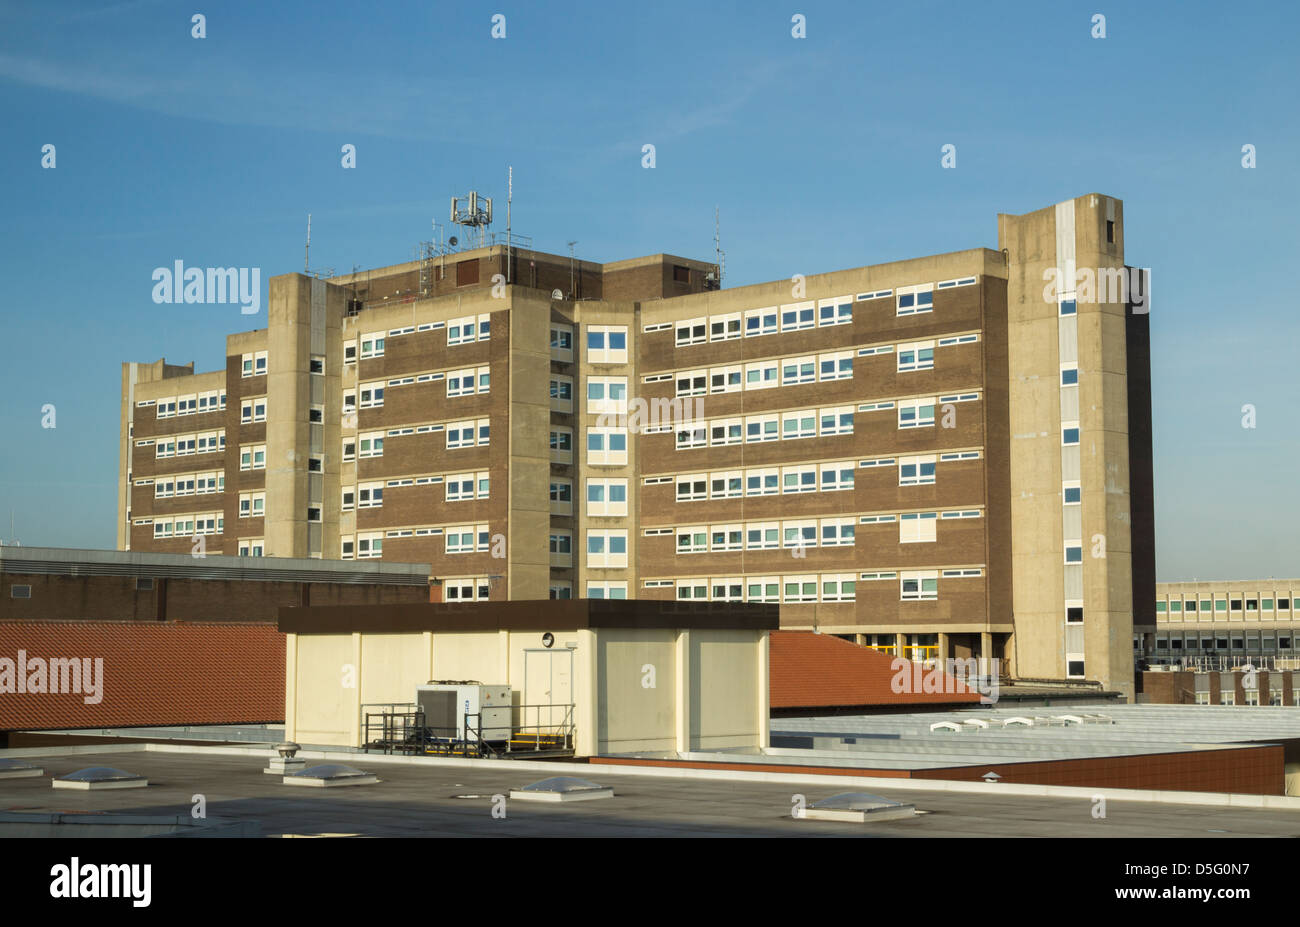 North Tees hospital, Hardwick, Stockton on Tees, Cleveland, England, uk - Stock Image